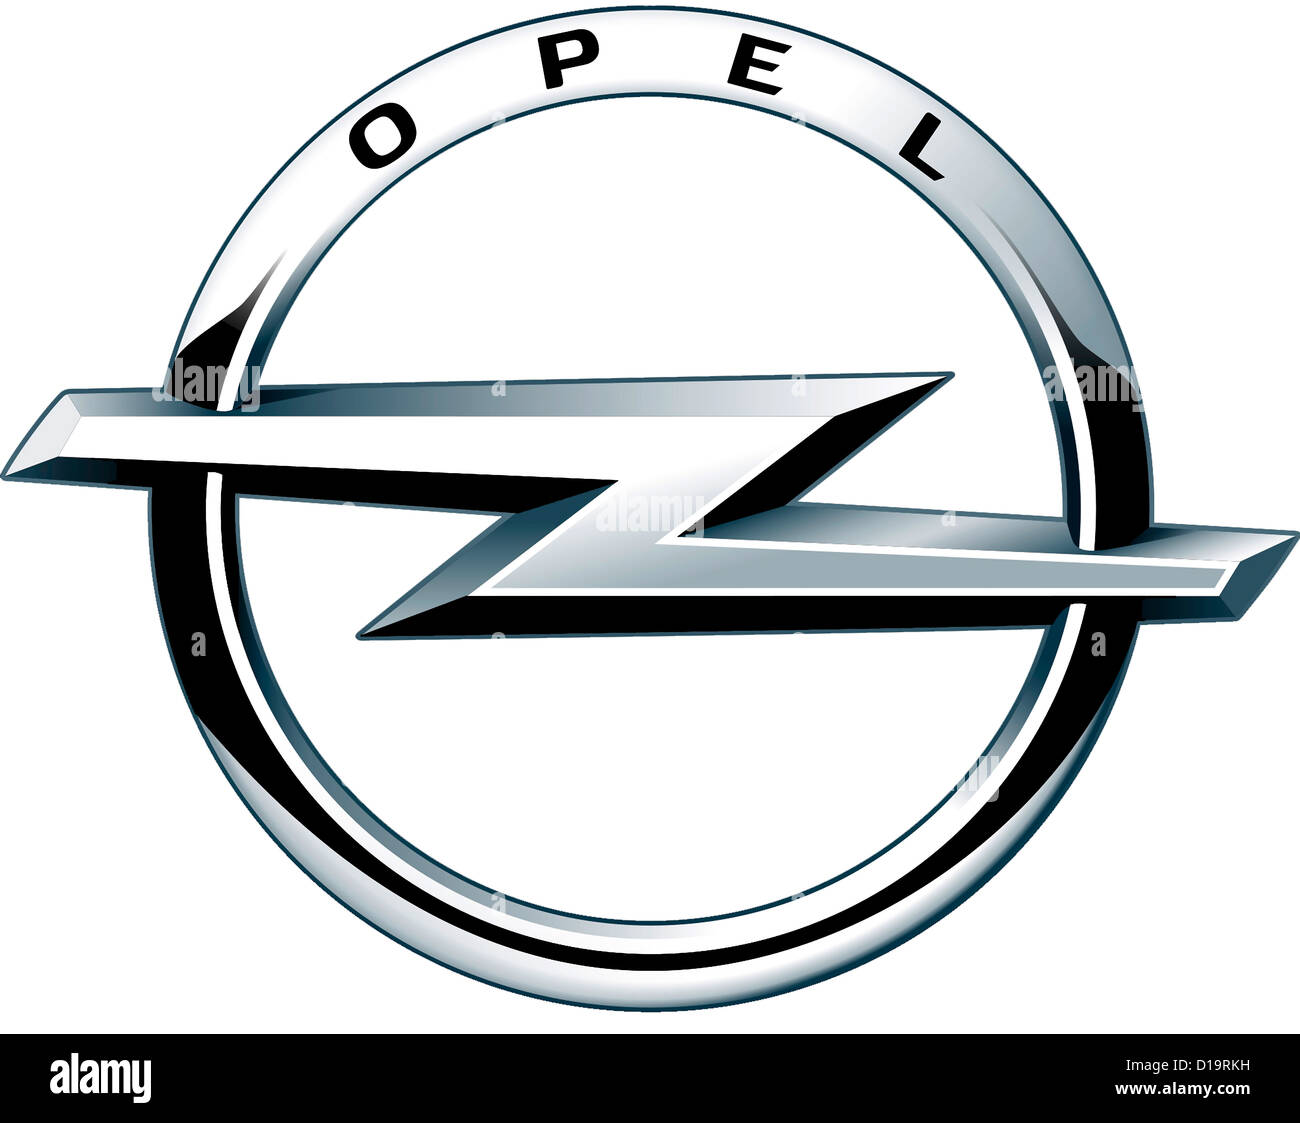 Logo of the German automobile manufacturer Opel with seat in Ruesselsheim - Adam Opel AG. - Stock Image